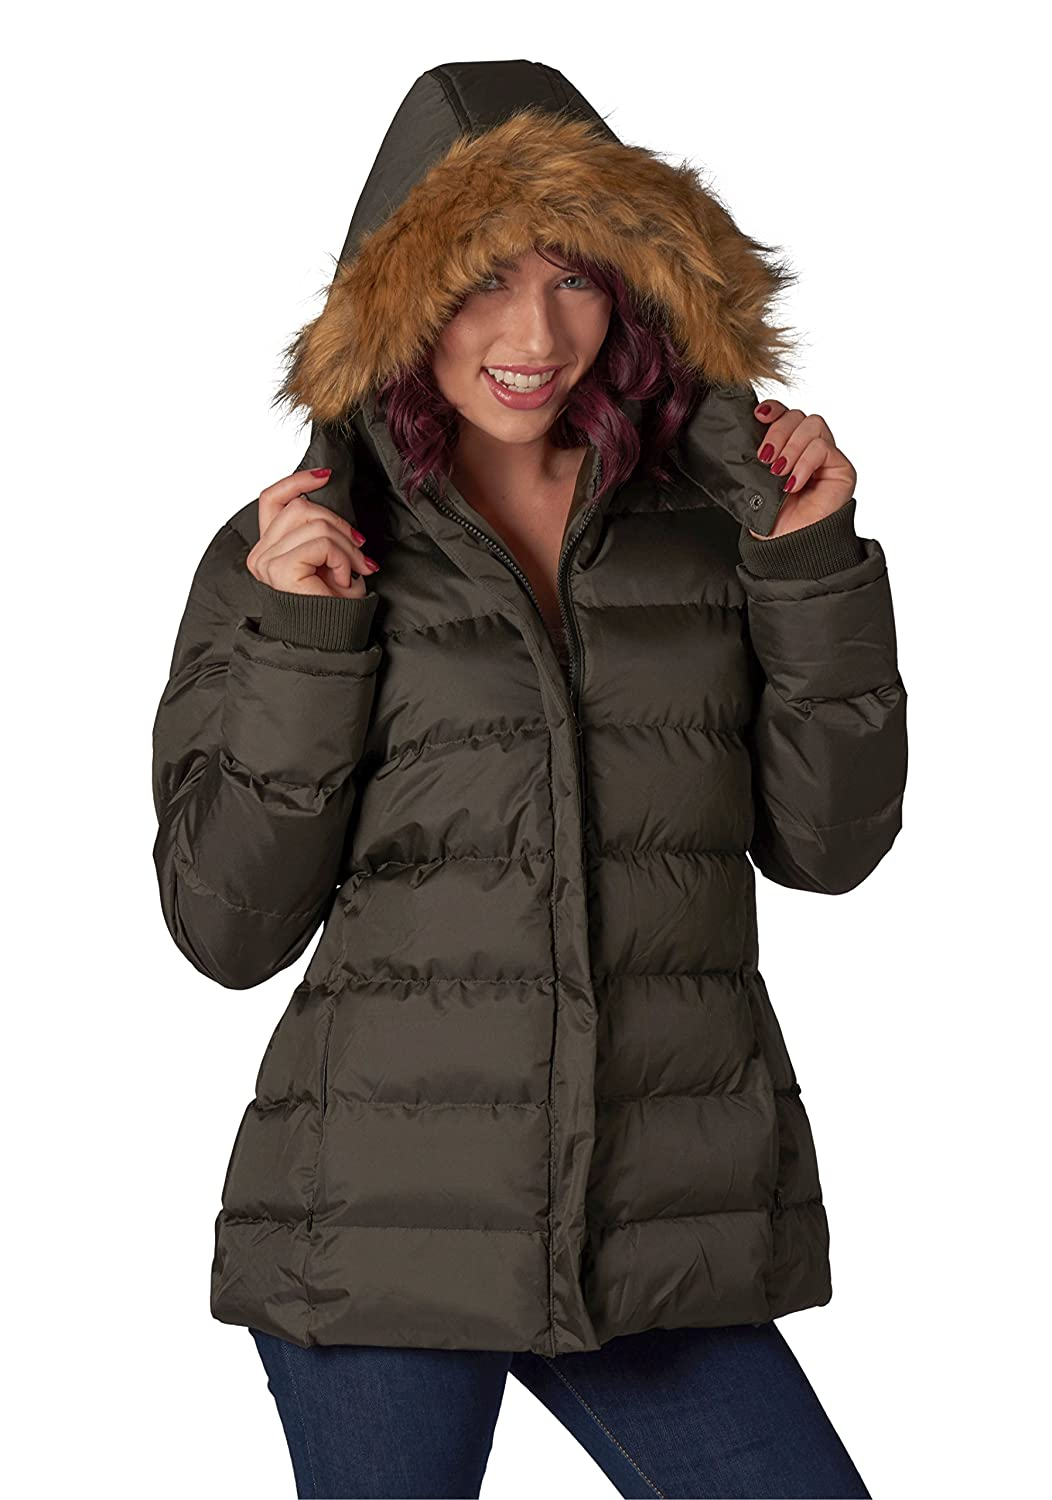 U2Wear Women's Puffer Coat with Faux-Fur Deatchable Hood 2417